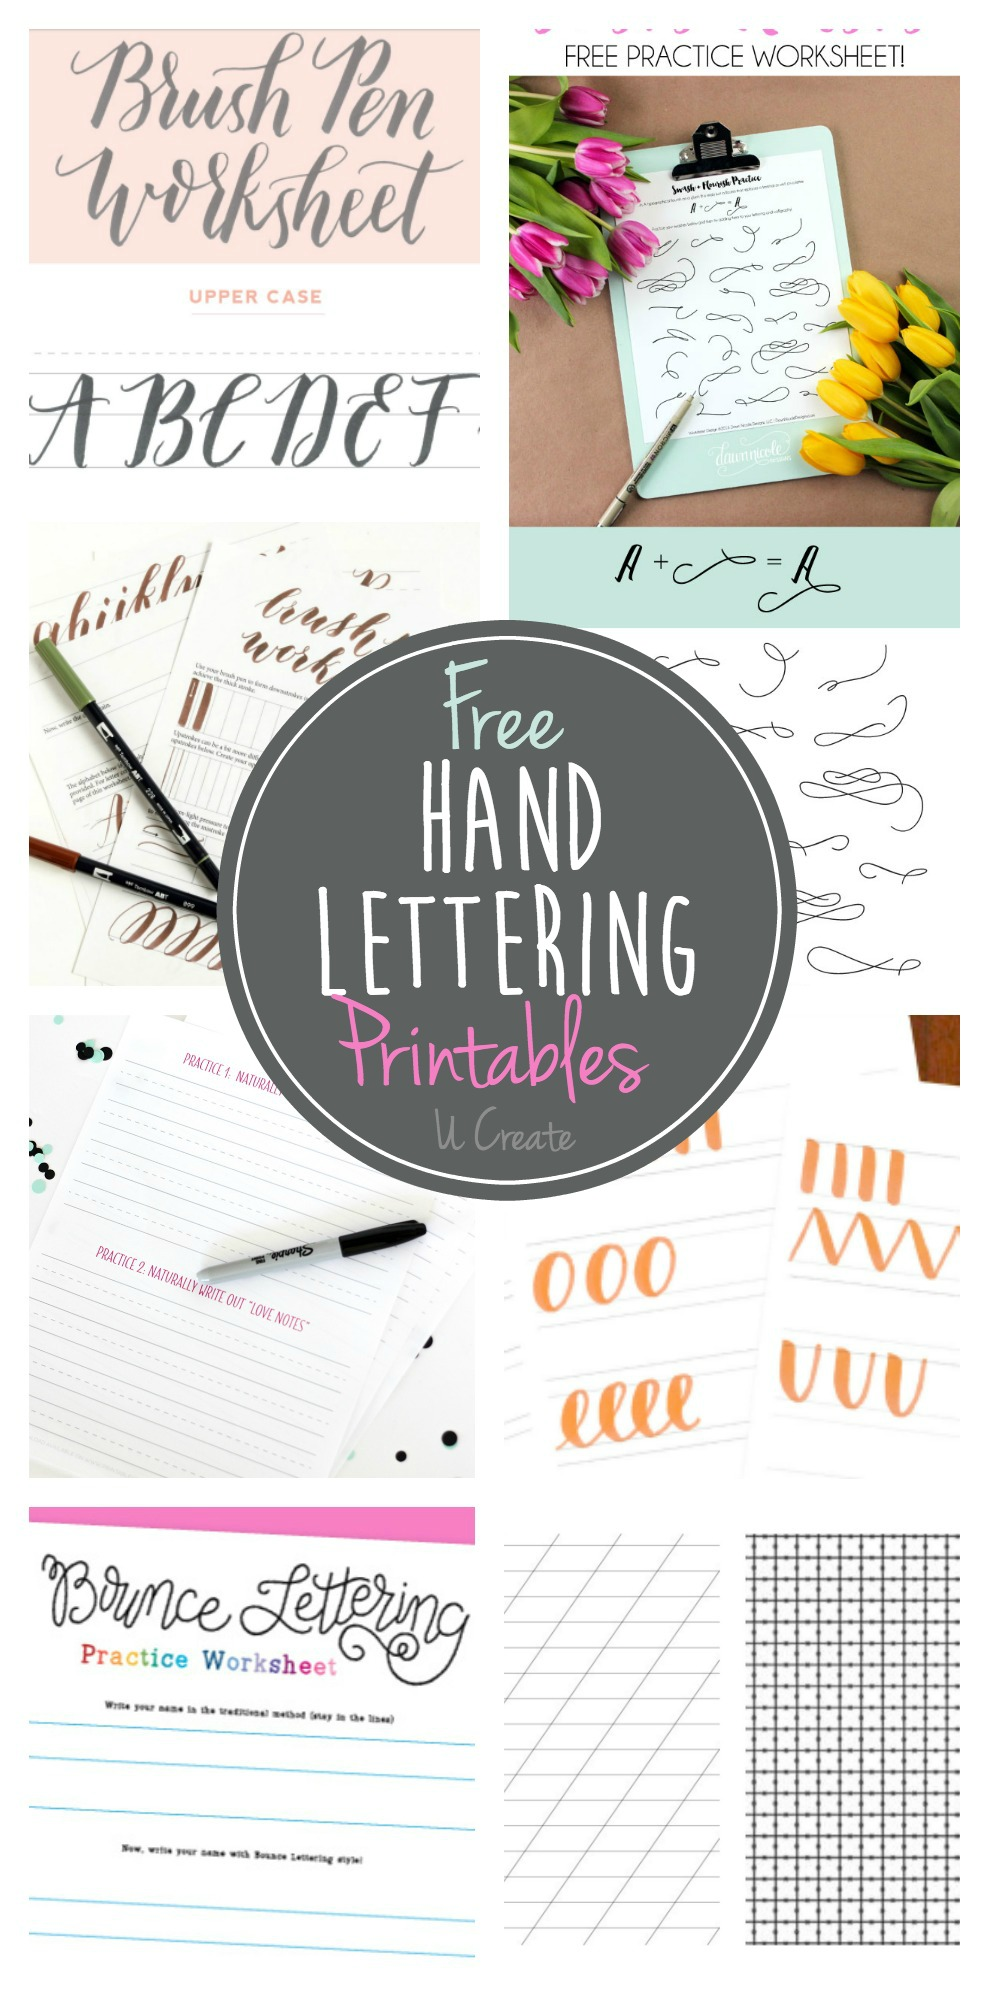 photo relating to Printable Lettering Free referred to as Cost-free Hand Lettering Printables